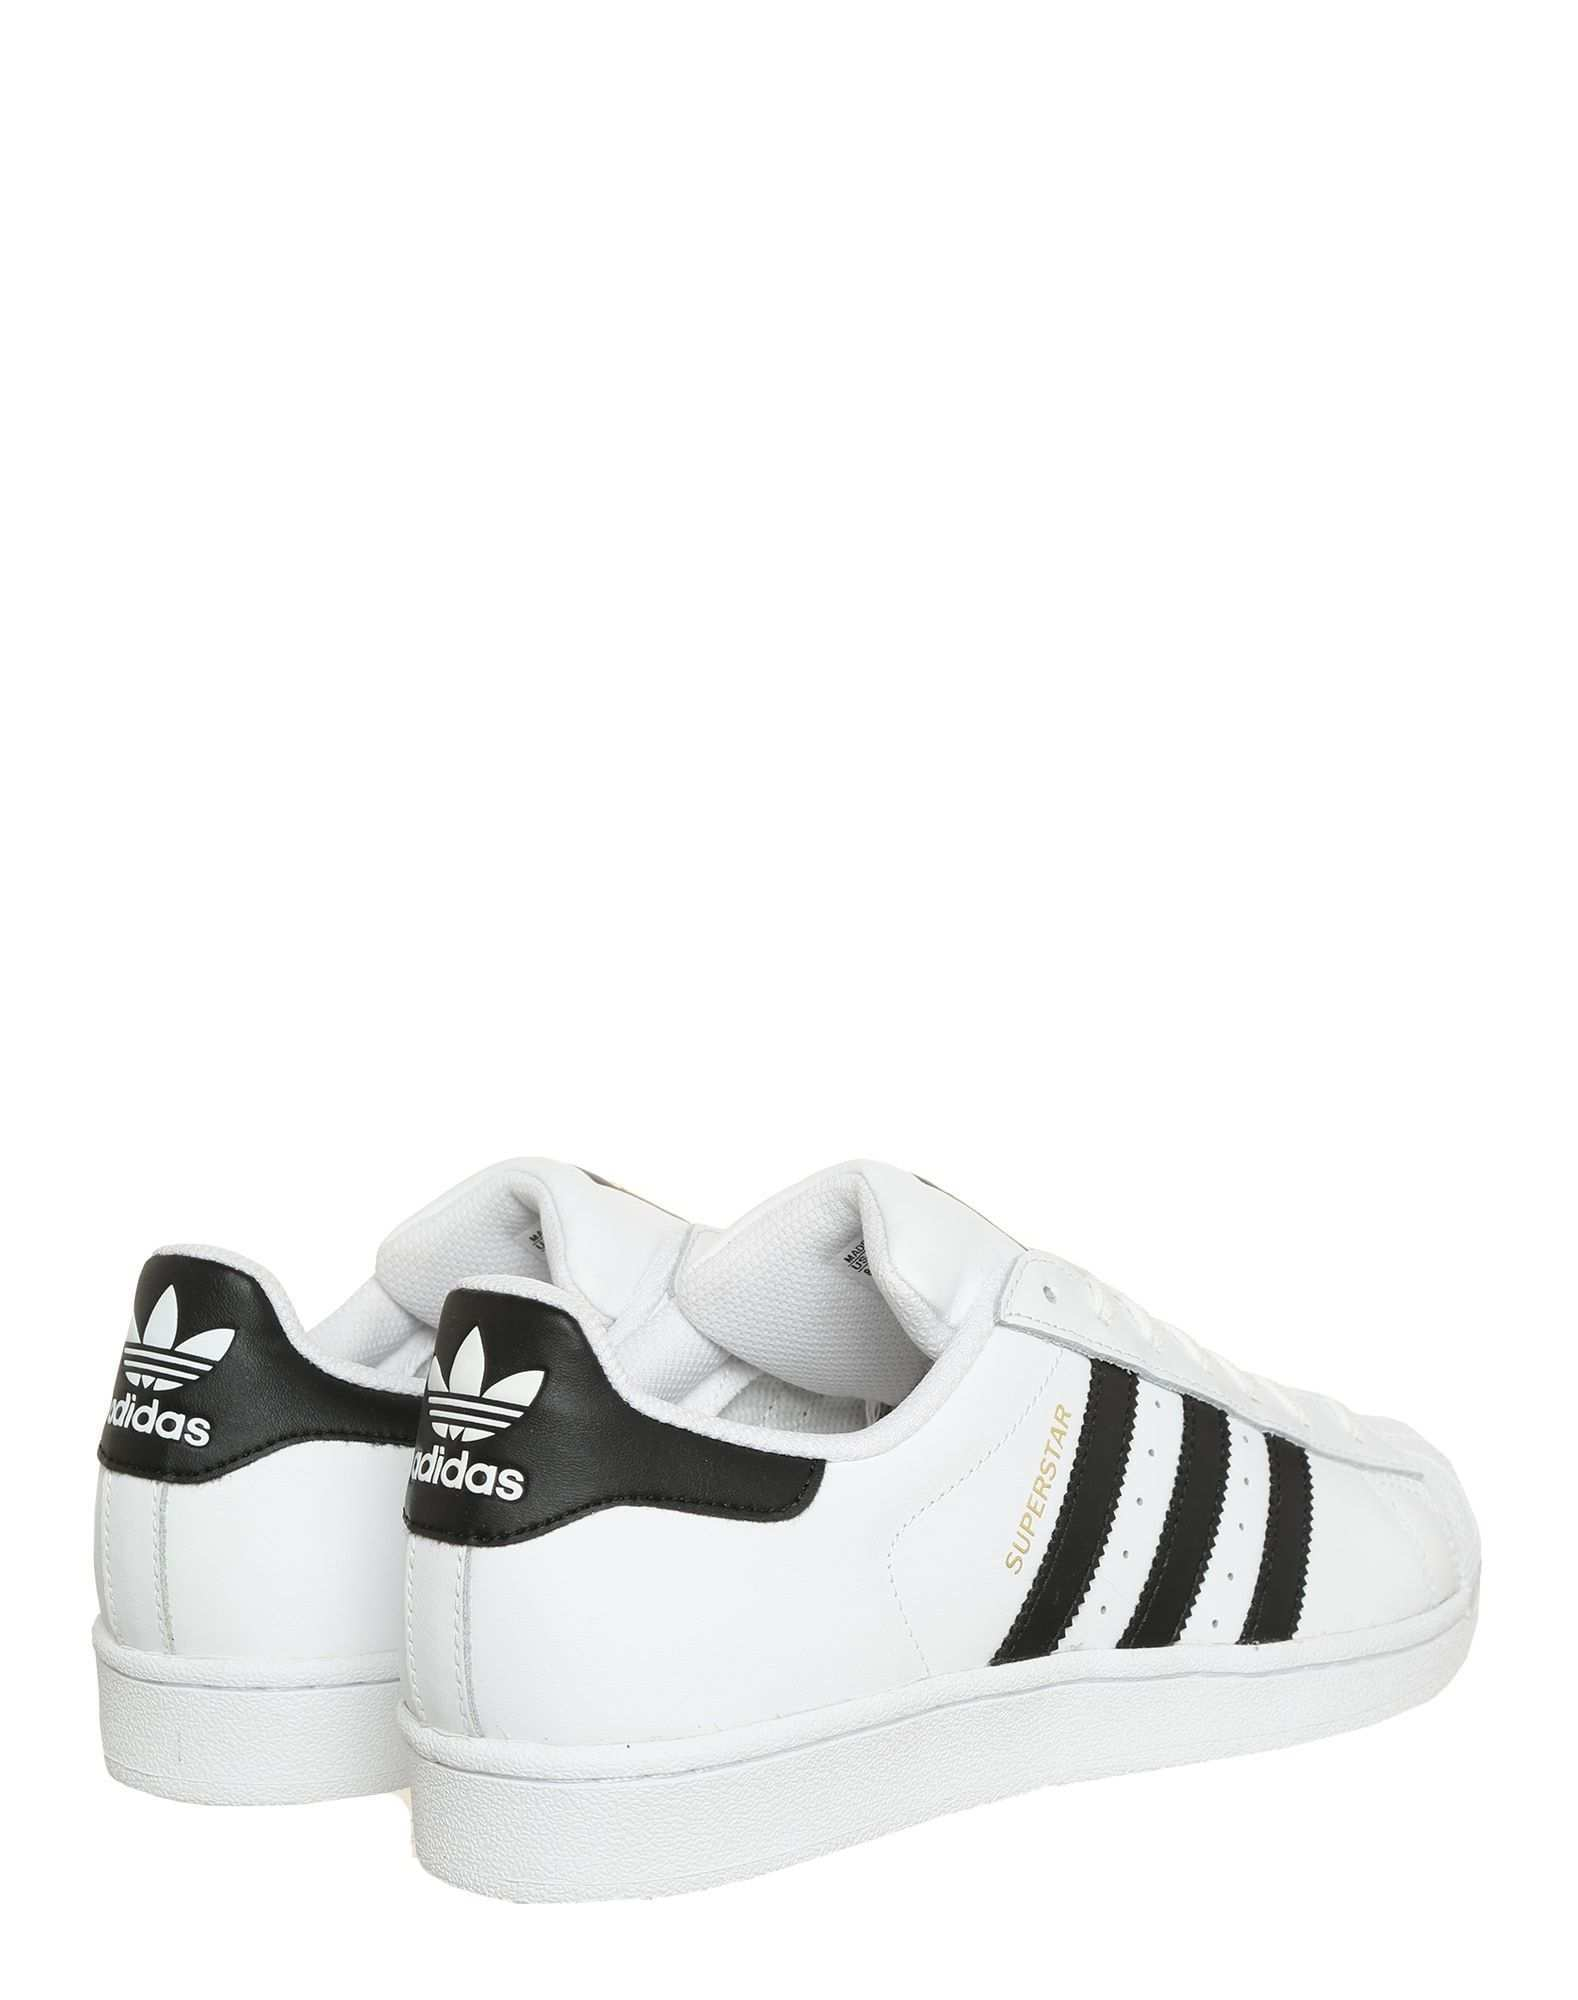 Adidas Originals Sneaker Superstar In Schwarz Weiss Adidasclothes Adidas Originals Sneaker Superstar D Adidas Superstar Sneakers Adidas Superstar Sneaker